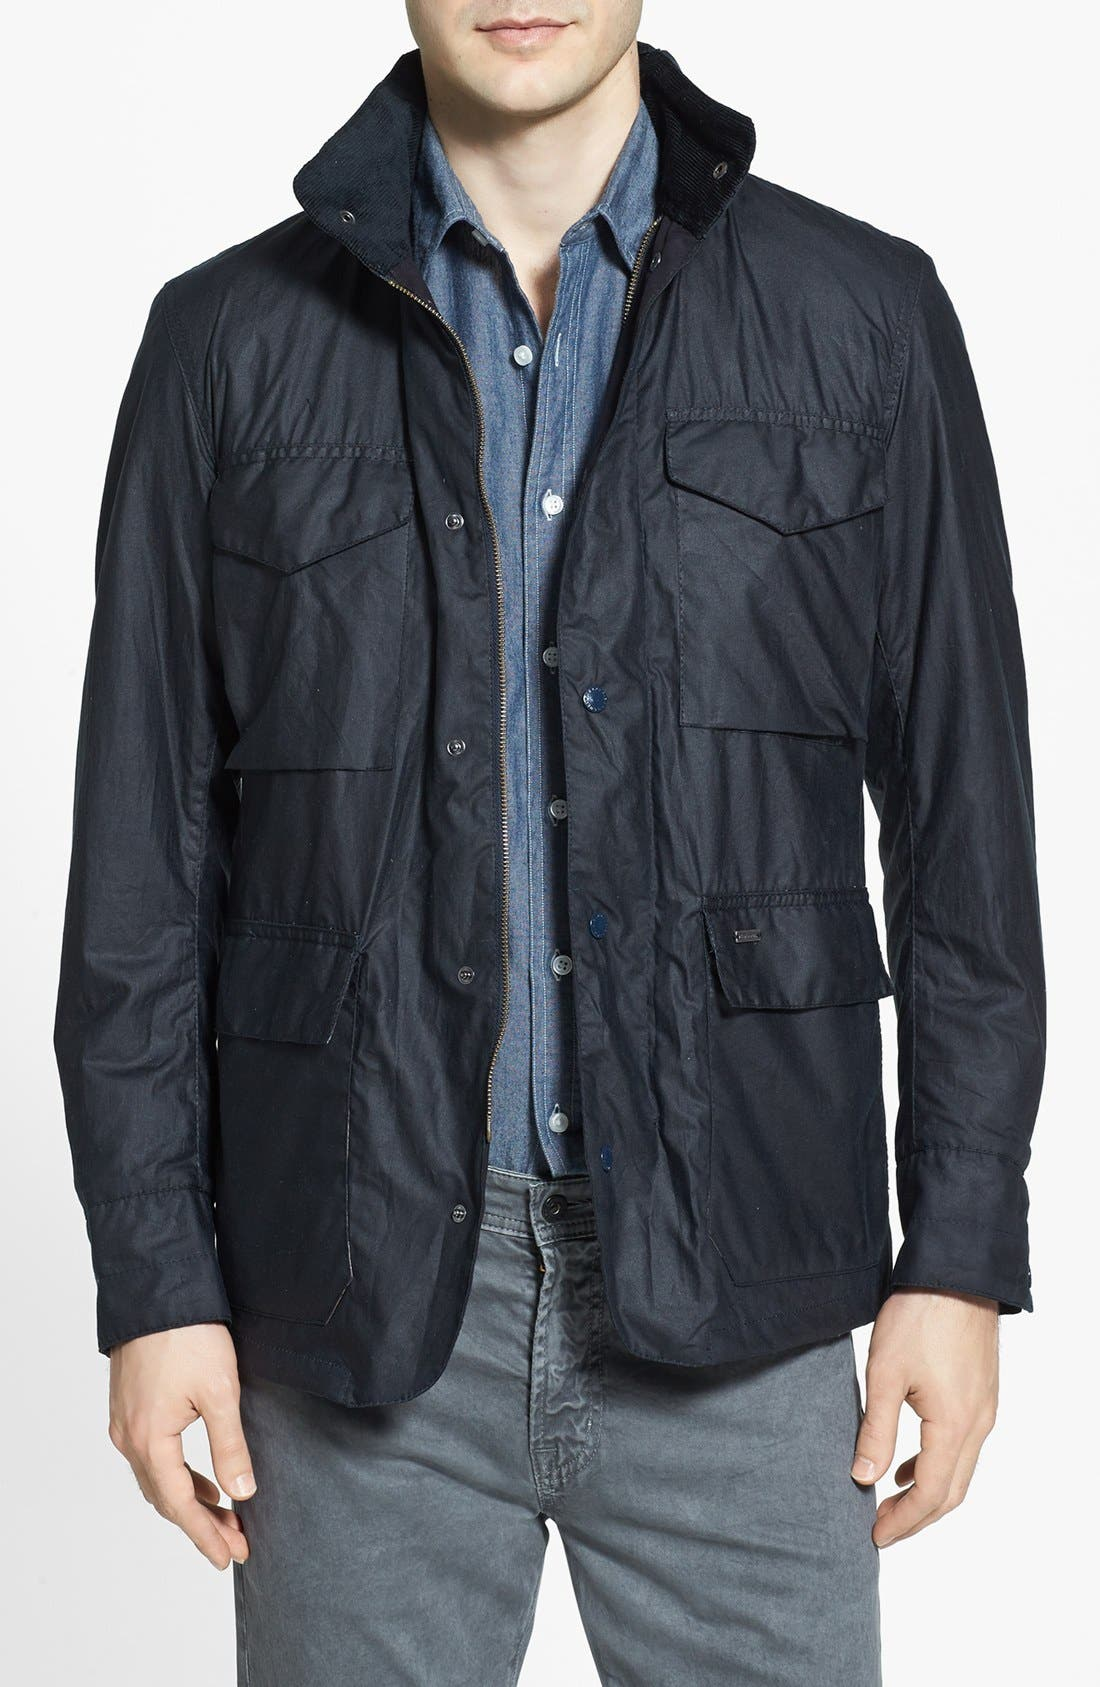 Main Image - Barbour 'Sapper' Tailored Fit Weatherproof Waxed Jacket